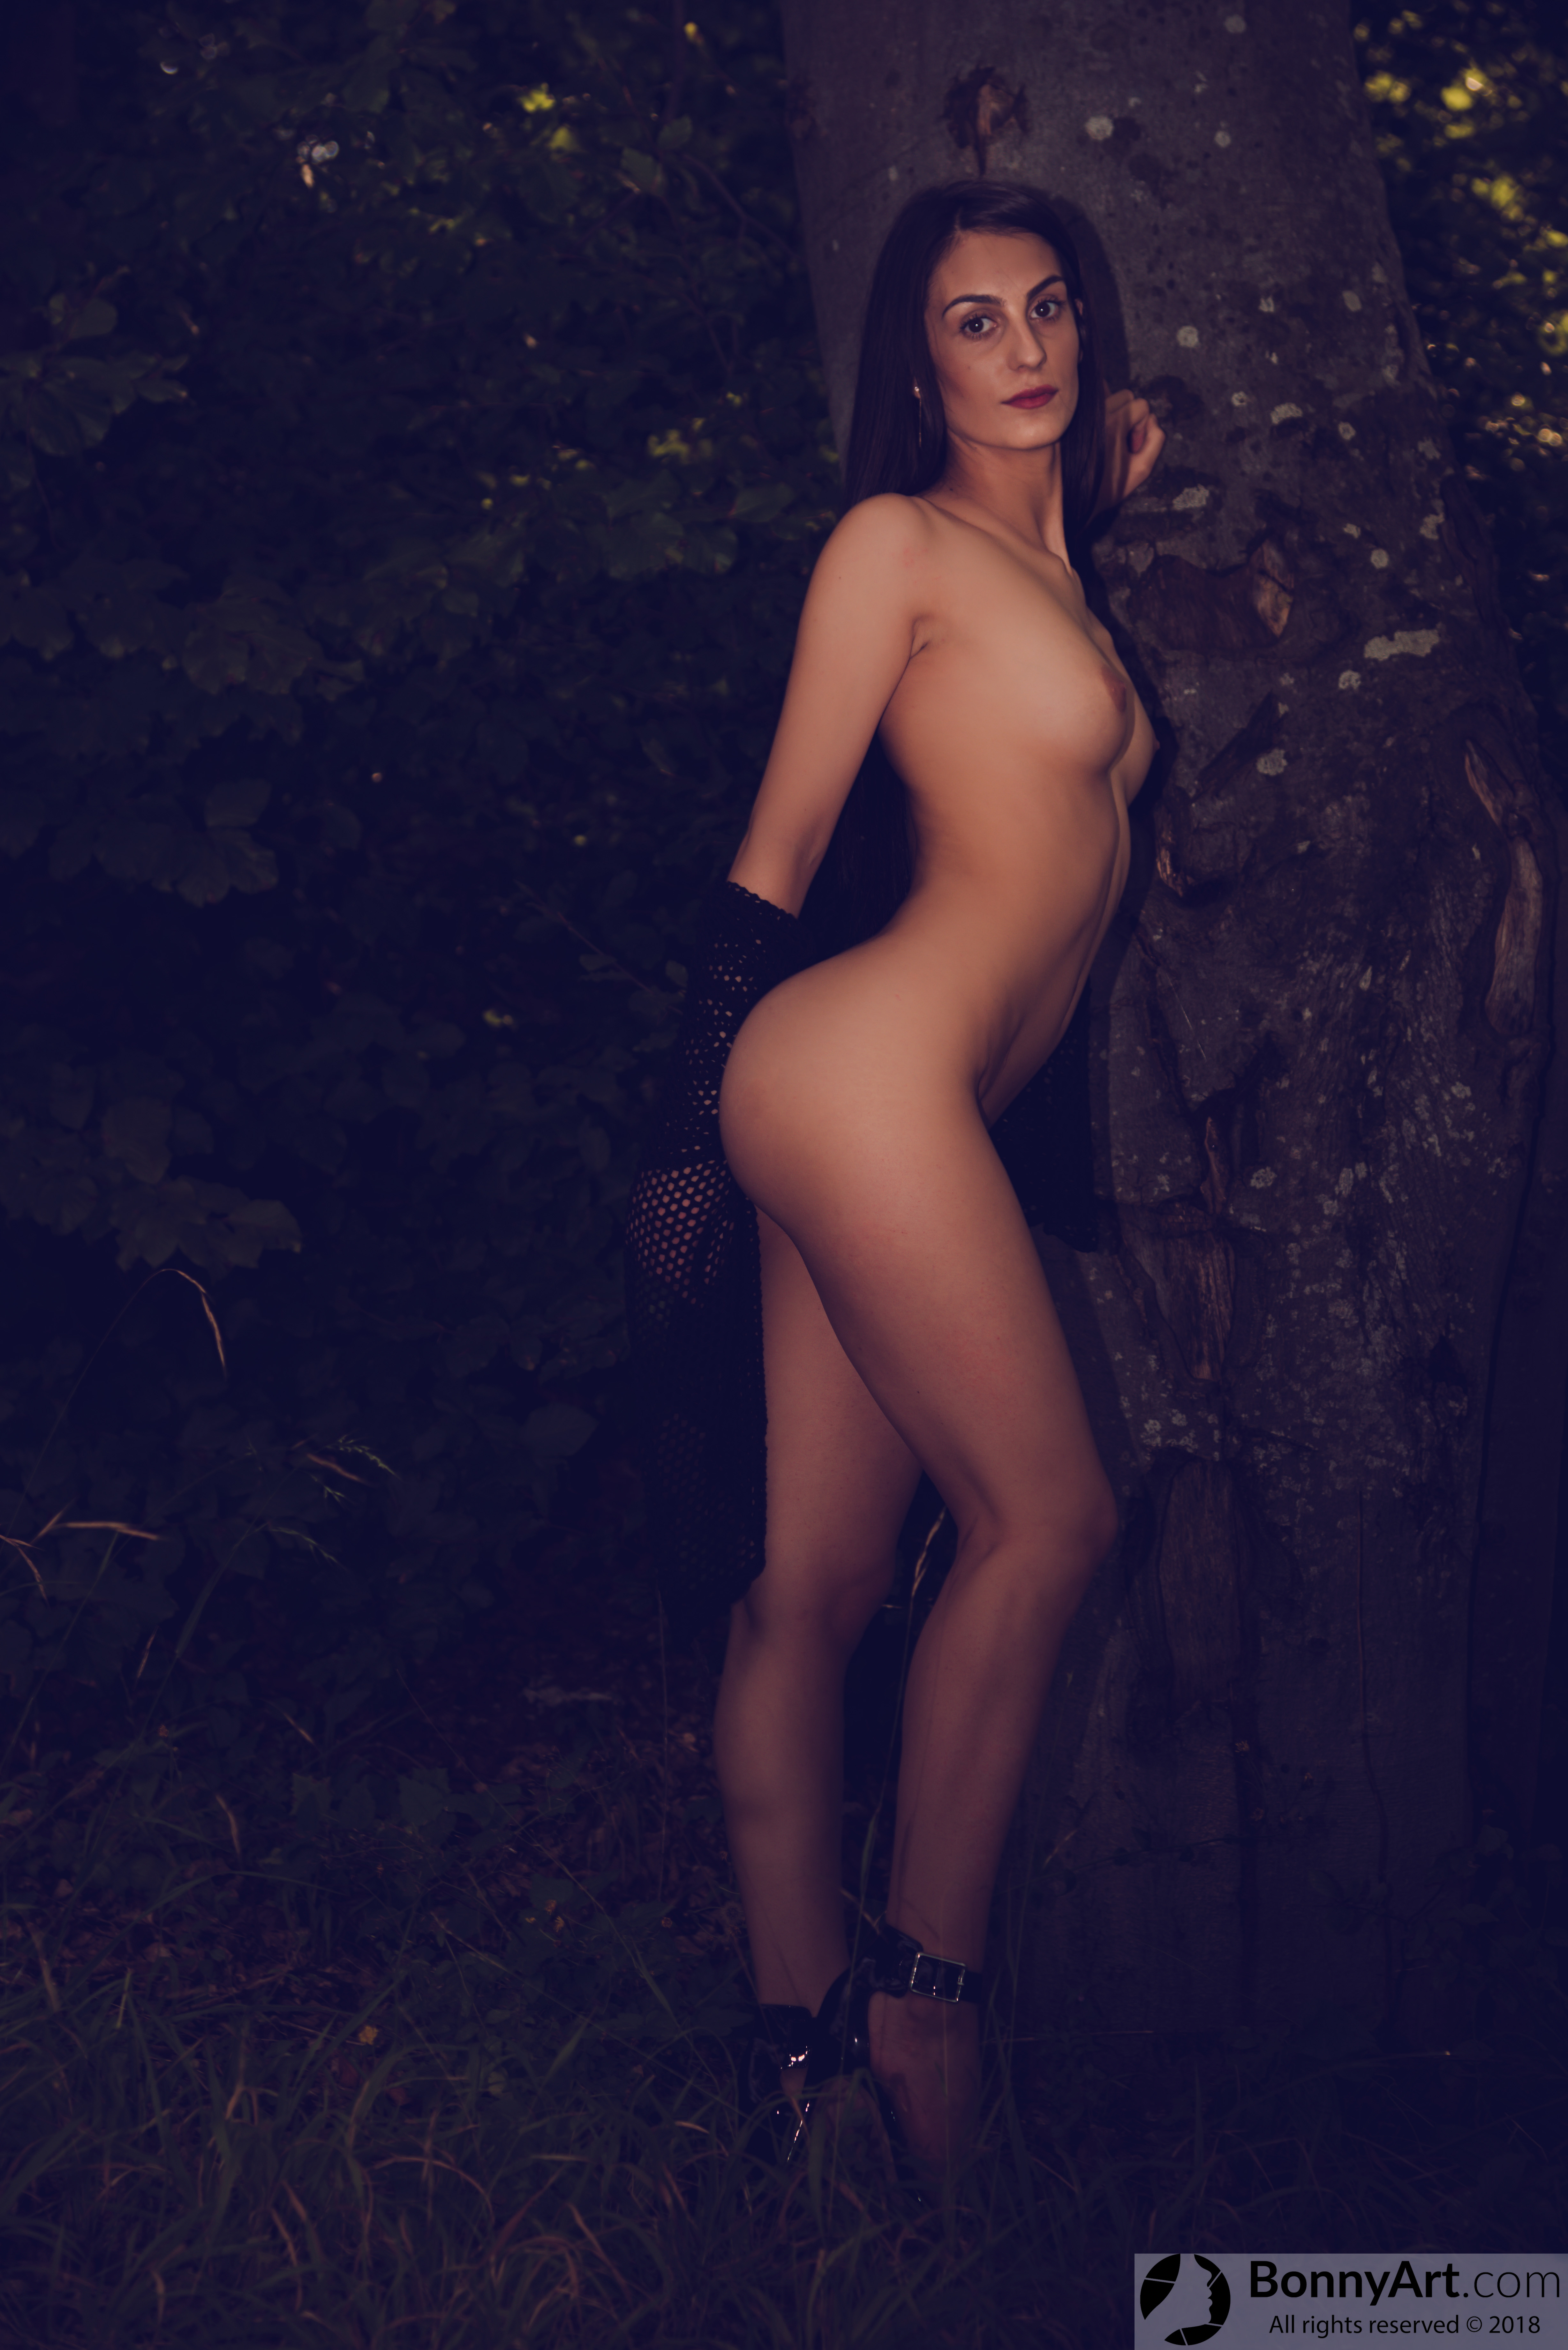 Tall Naked Girl Showing her Curves in the Forest